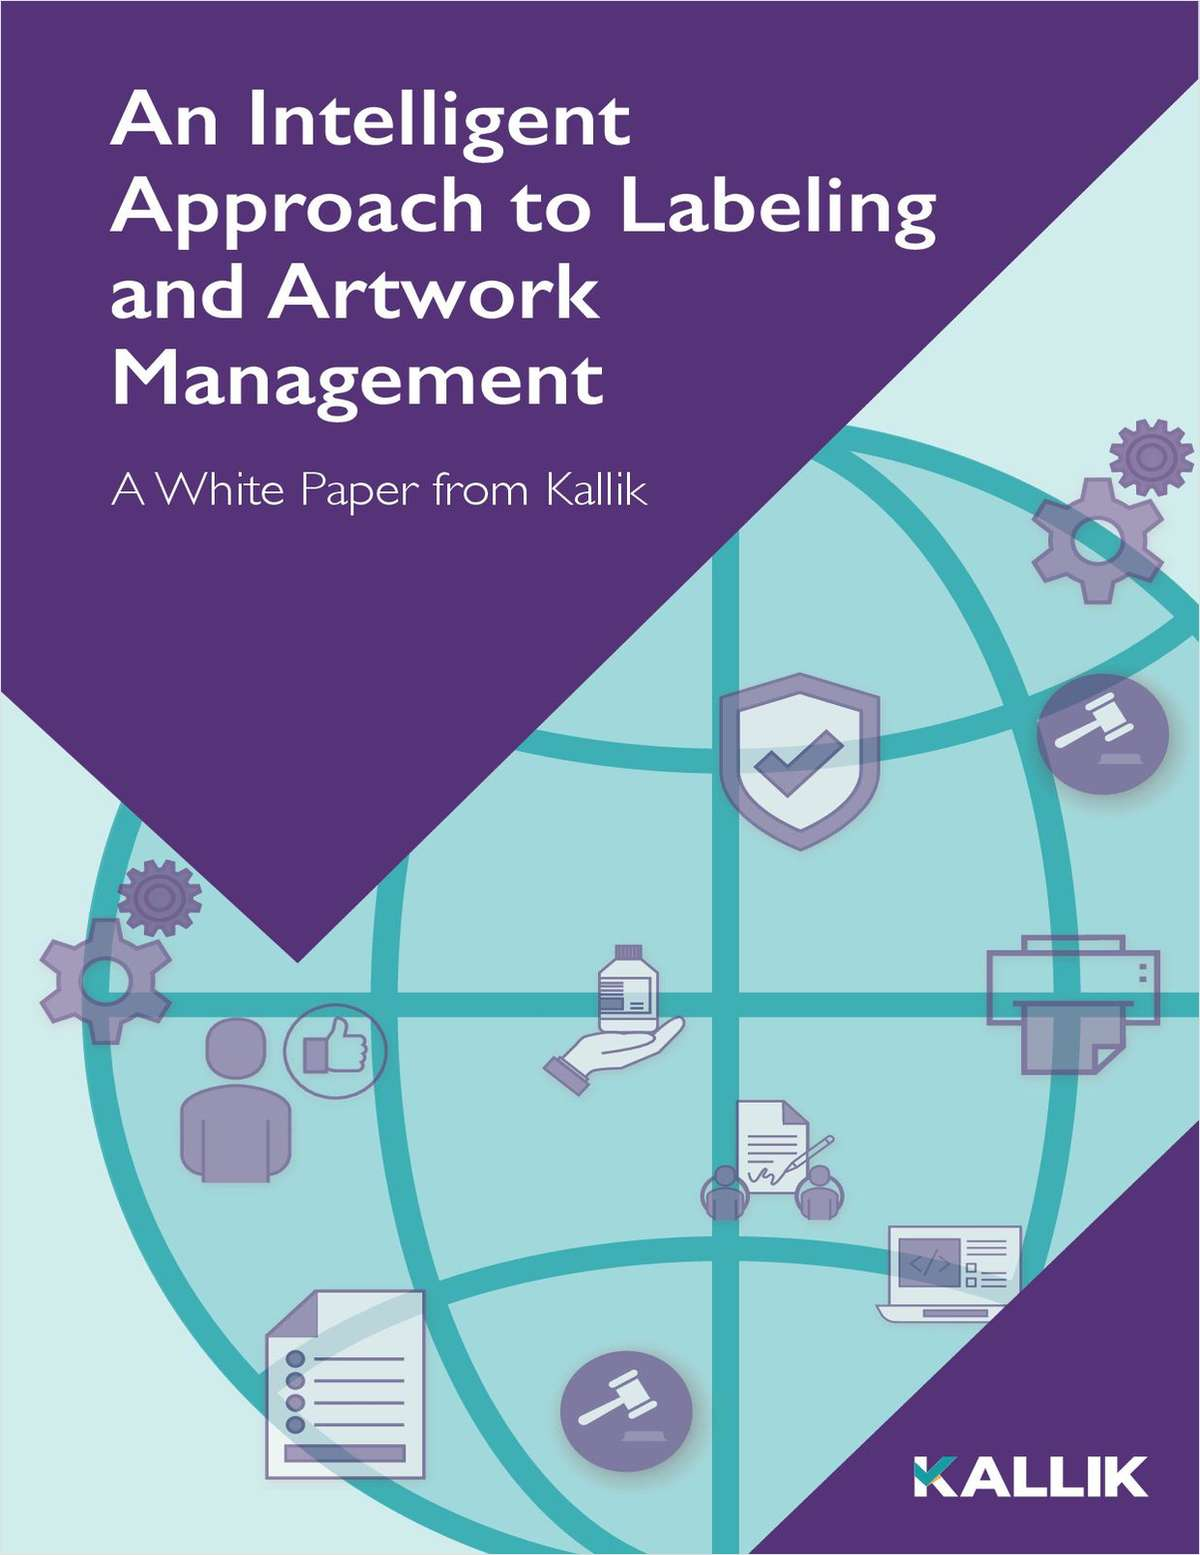 An Intelligent Approach to Labeling and Artwork Management